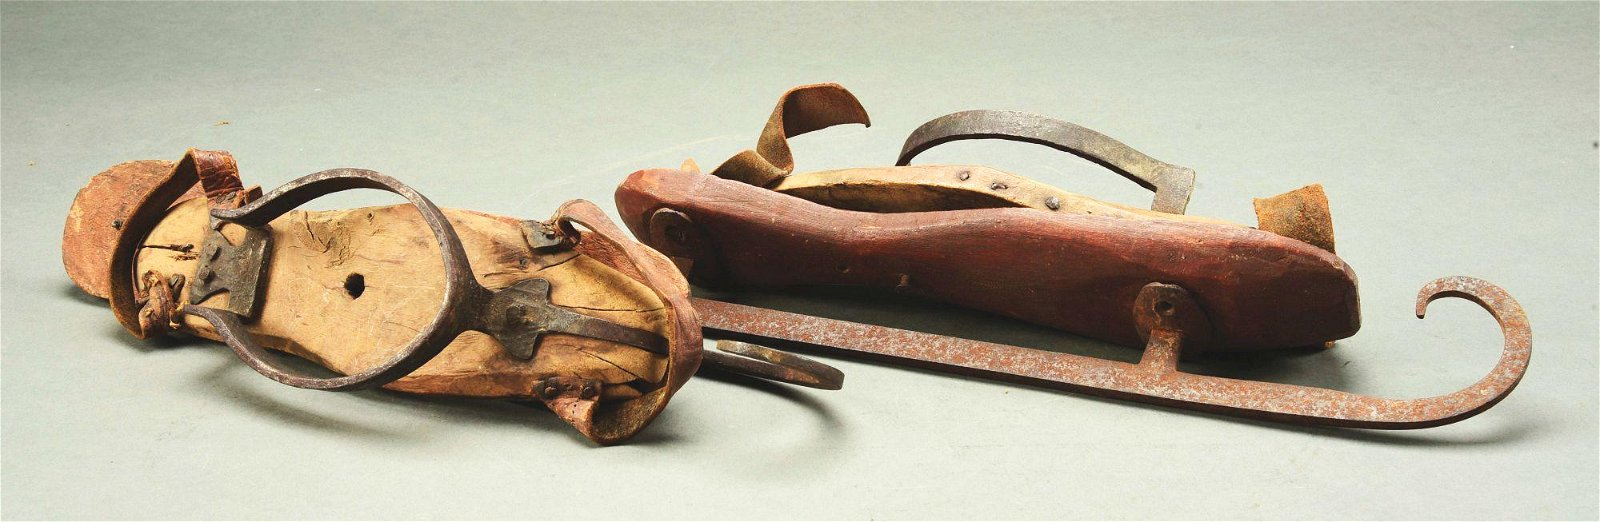 PAIR OF EARLY ICE SKATES.